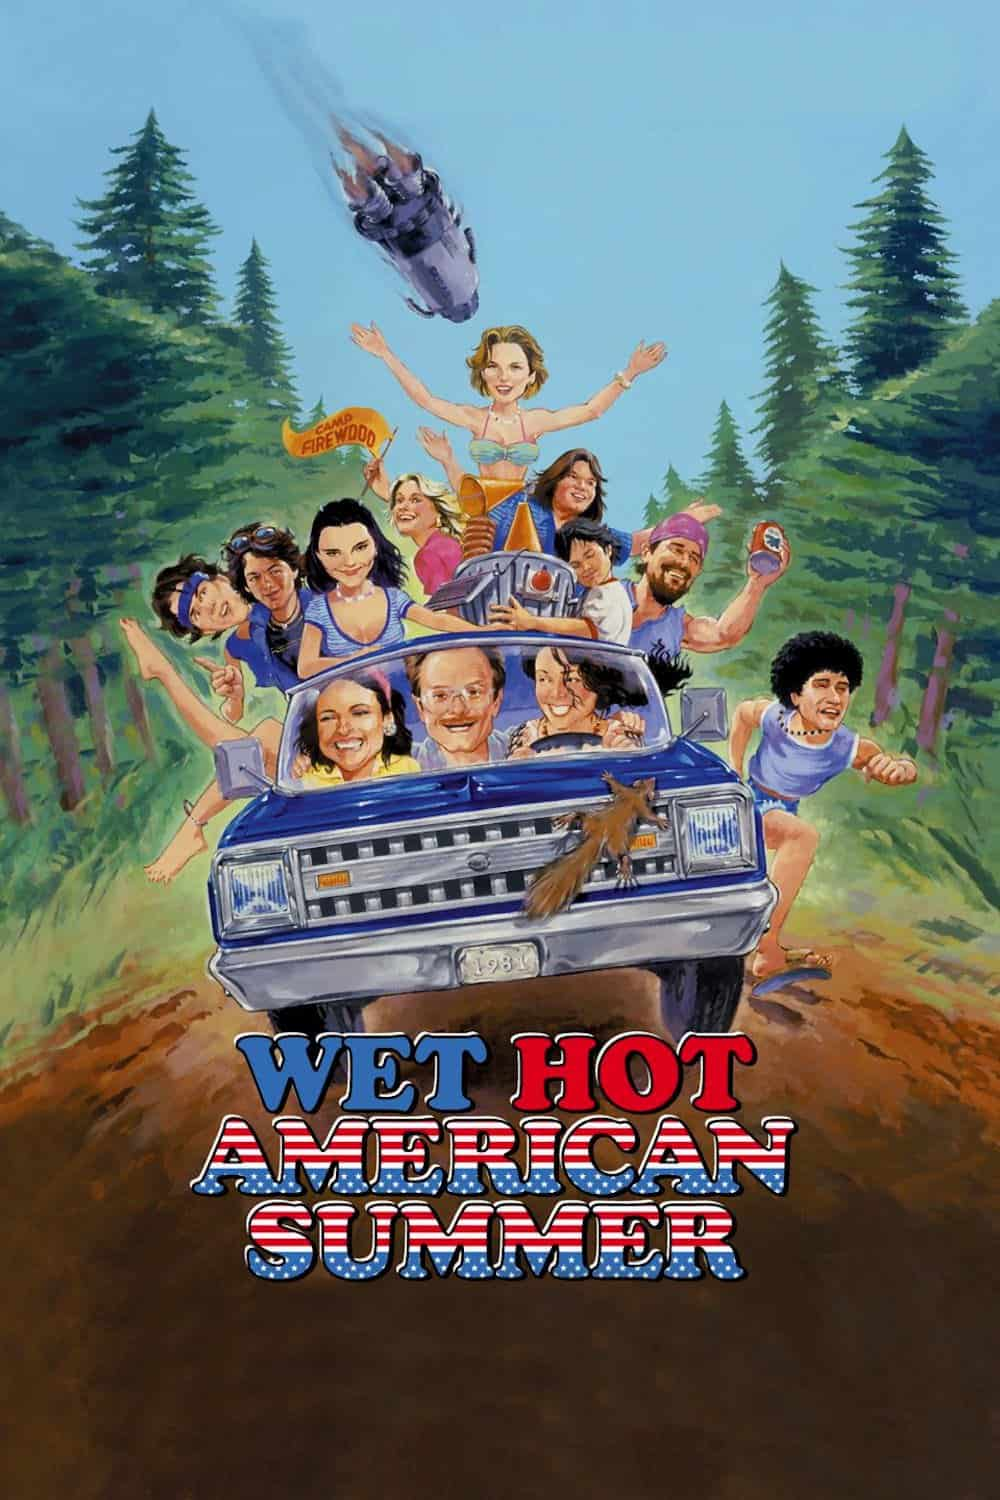 Wet Hot American Summer, 2001